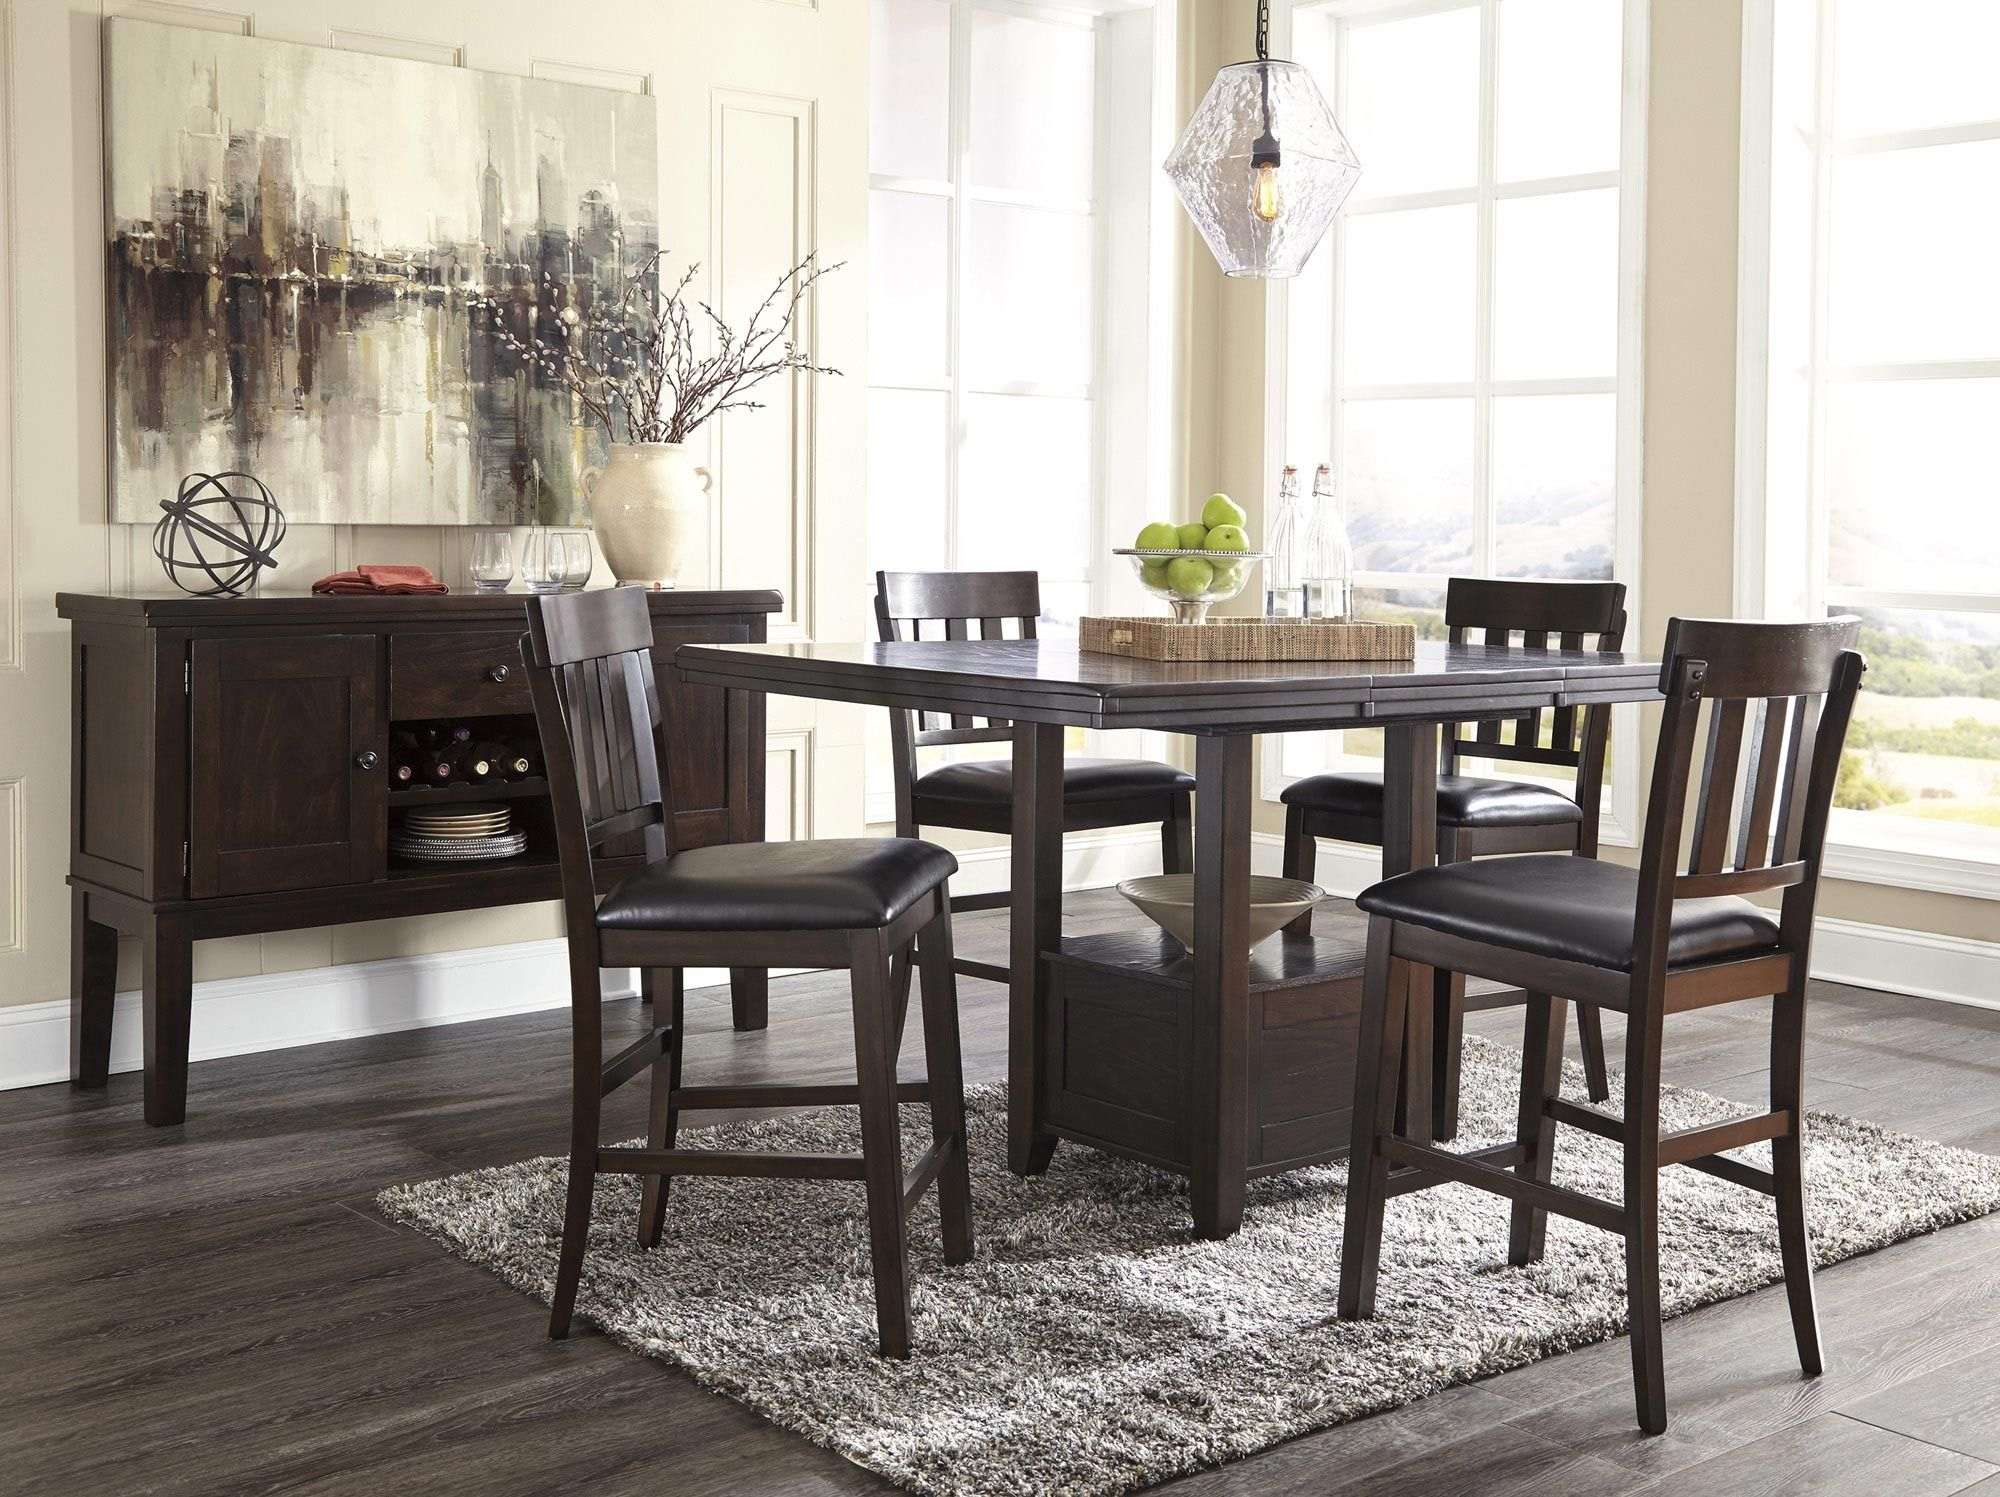 Haddigan Rectangular Counter Height Dining Table In Brown Ashley Home Gallery St Brown Dining Room Round Dining Room Sets Counter Height Dining Room Tables